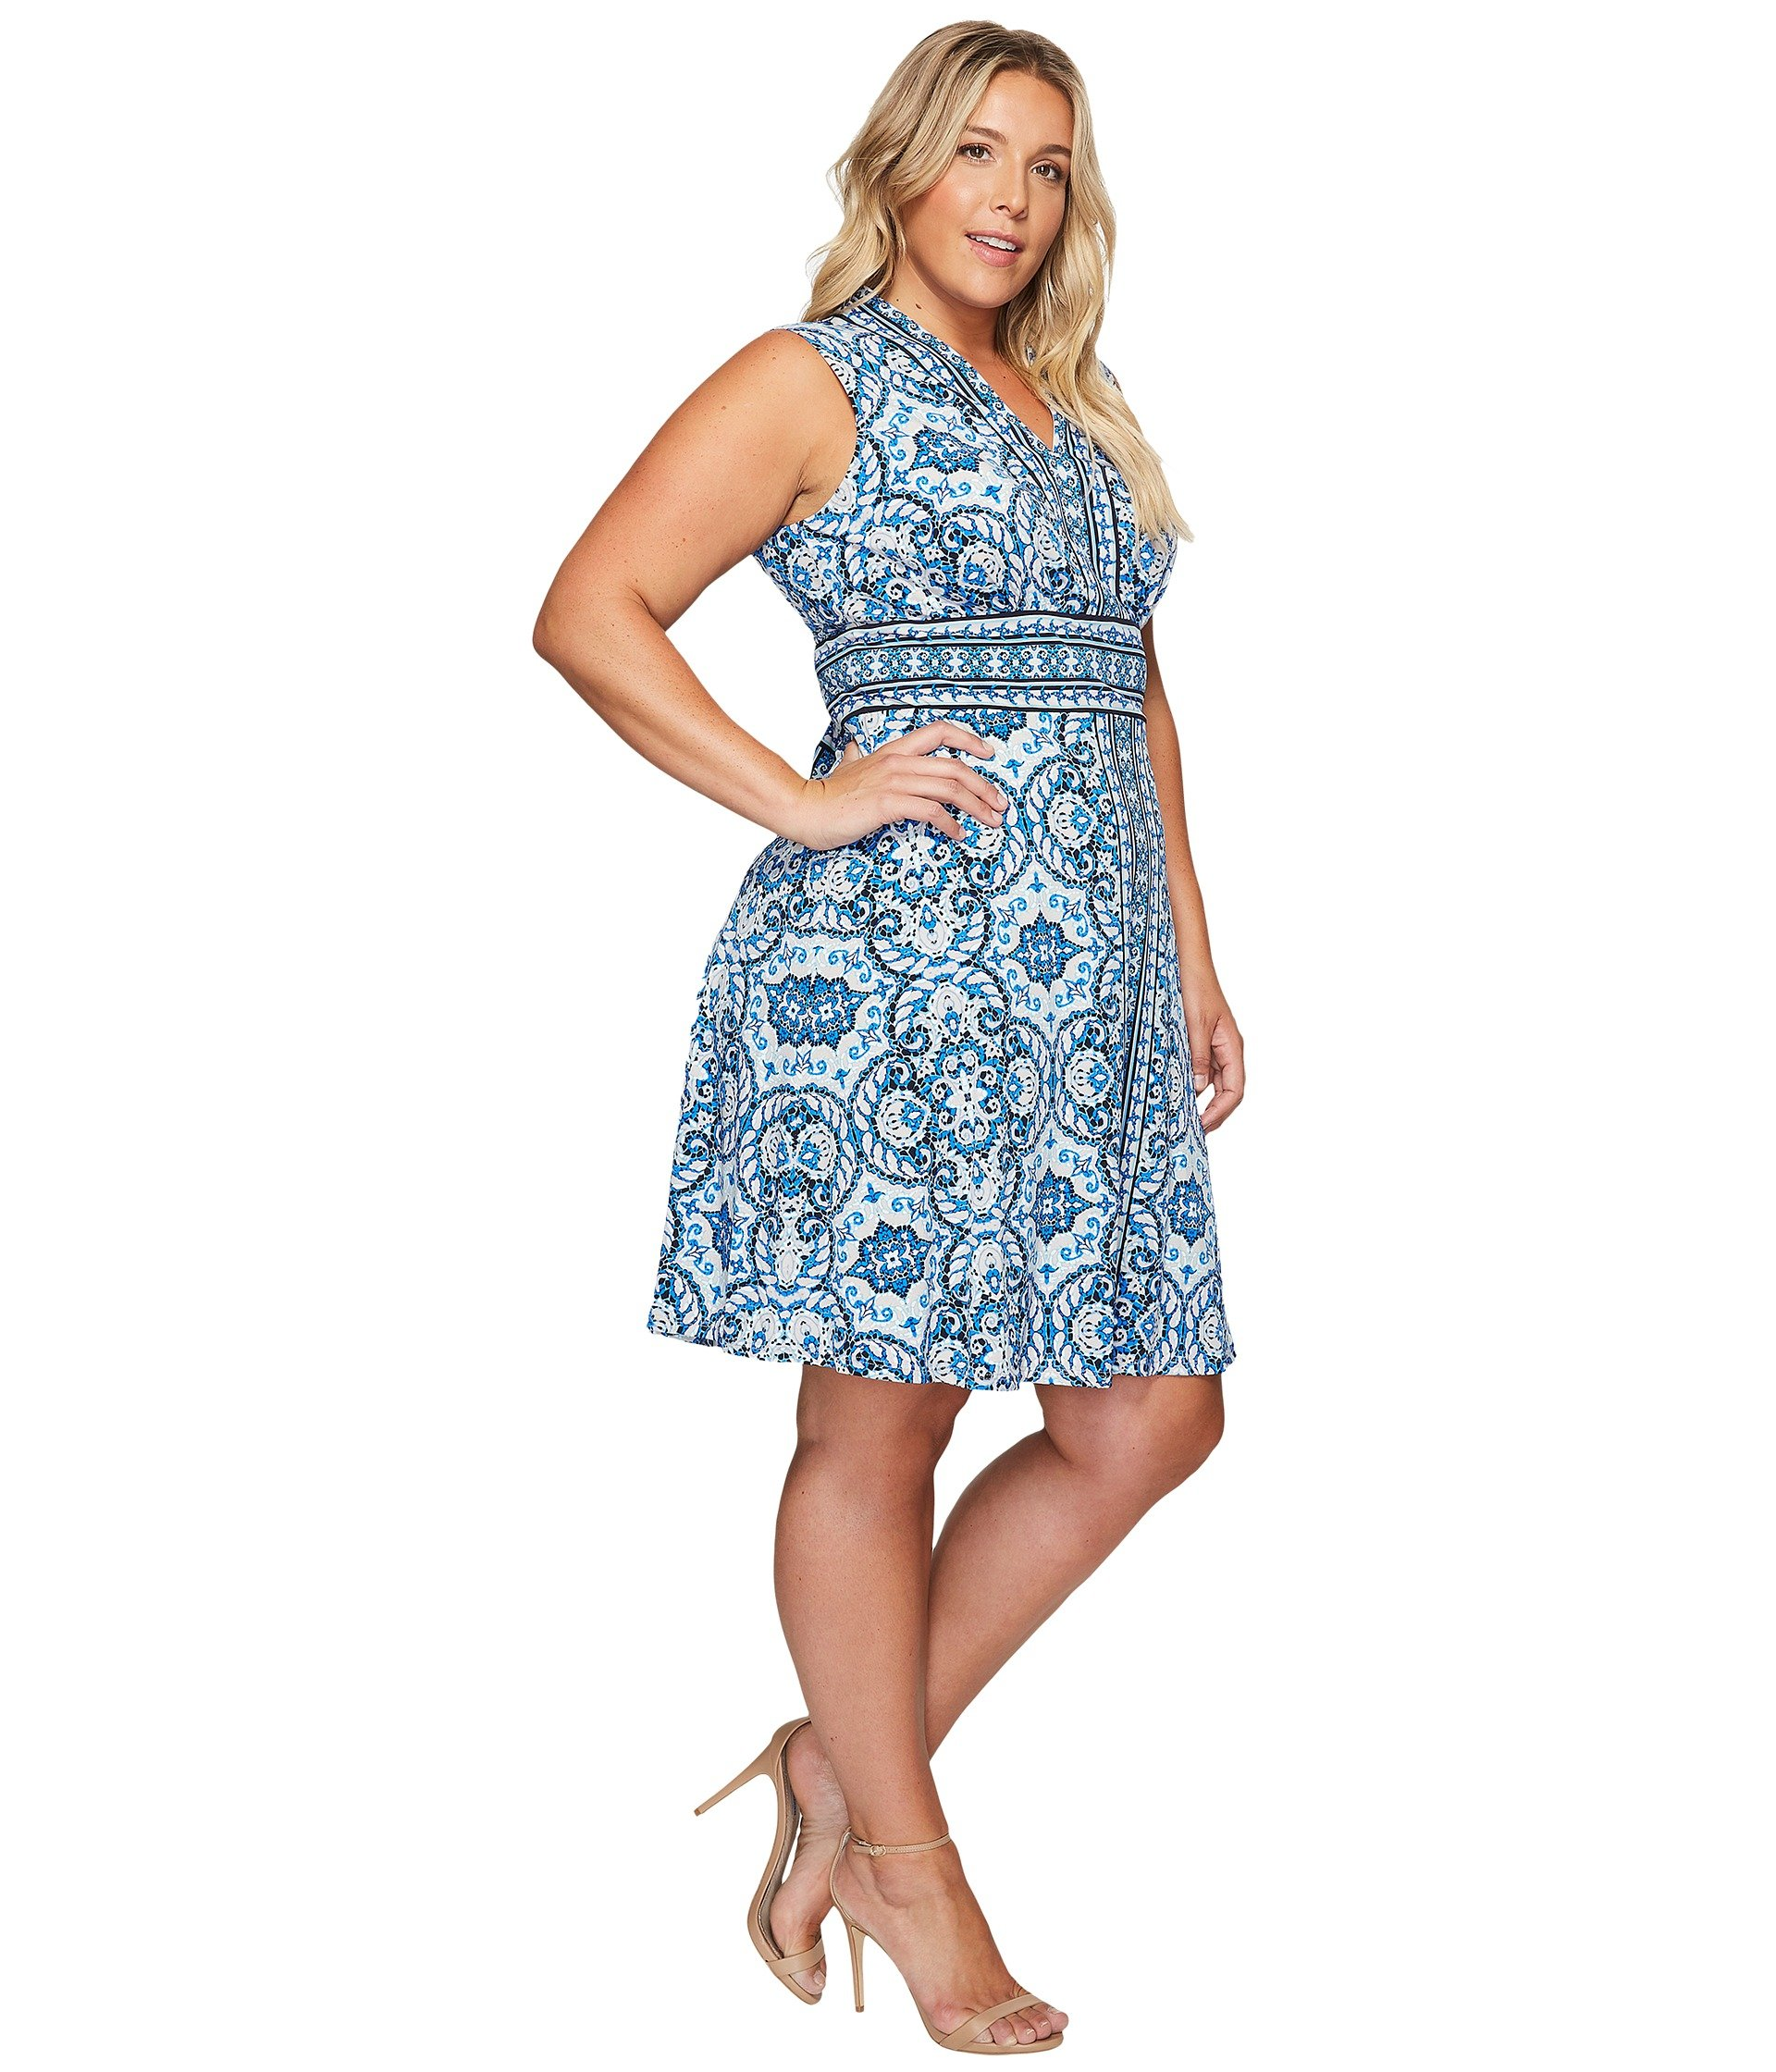 Jan 10,  · Re: Any clothes stores for plus size women in London? Jan 10, , PM M&S have a good range and Evans specializes in plus sizes but most department stores will have a good selection.